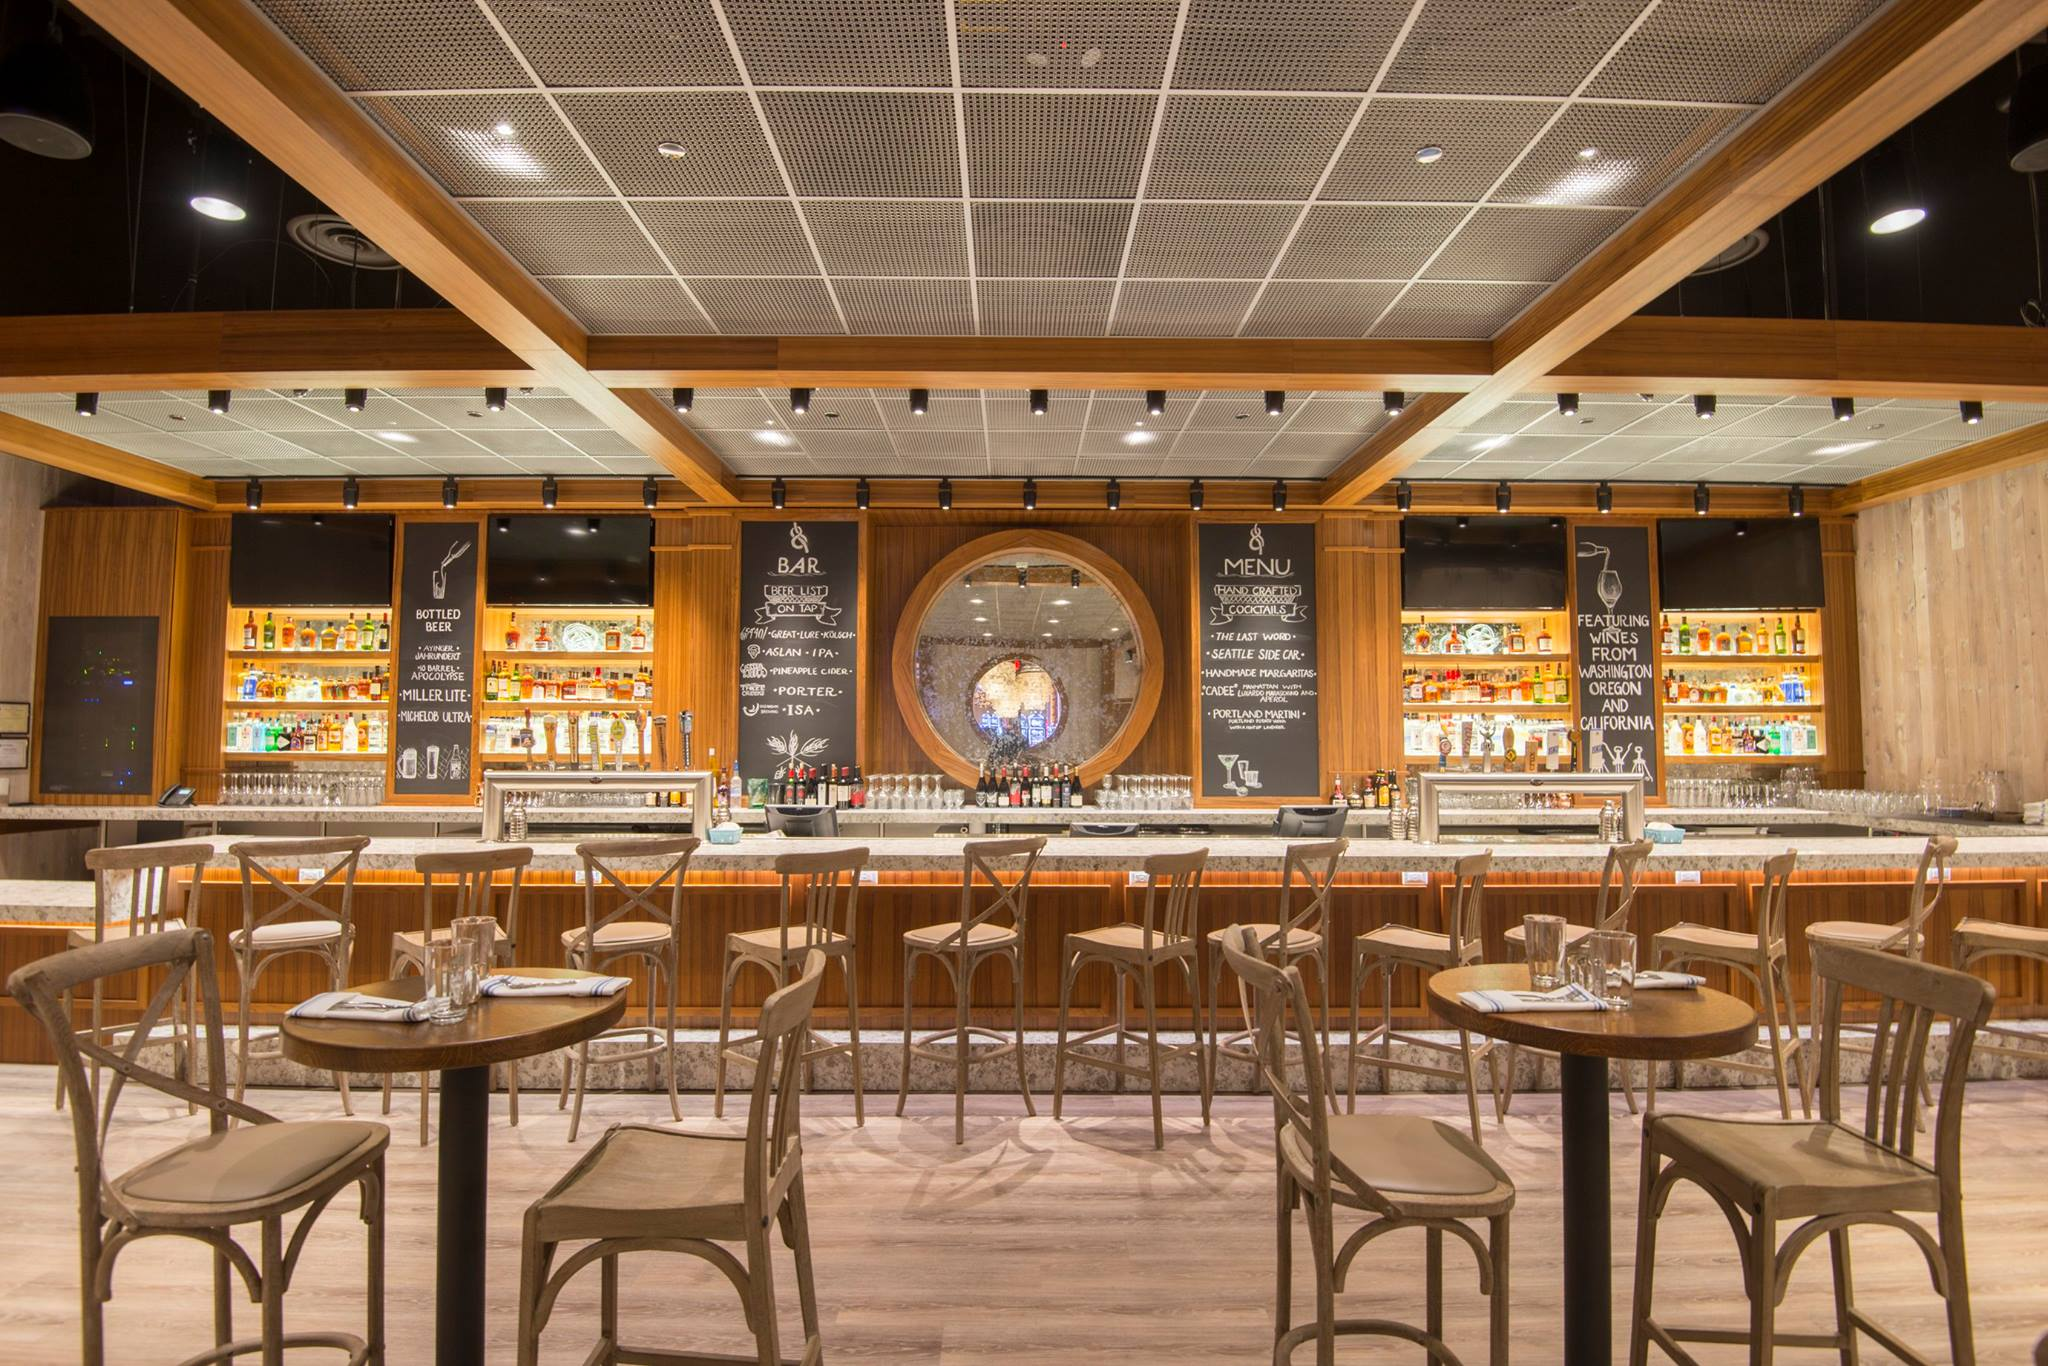 10 Barrel Brewing Beer Dinner at Line & Lure Seafood Kitchen and Tap